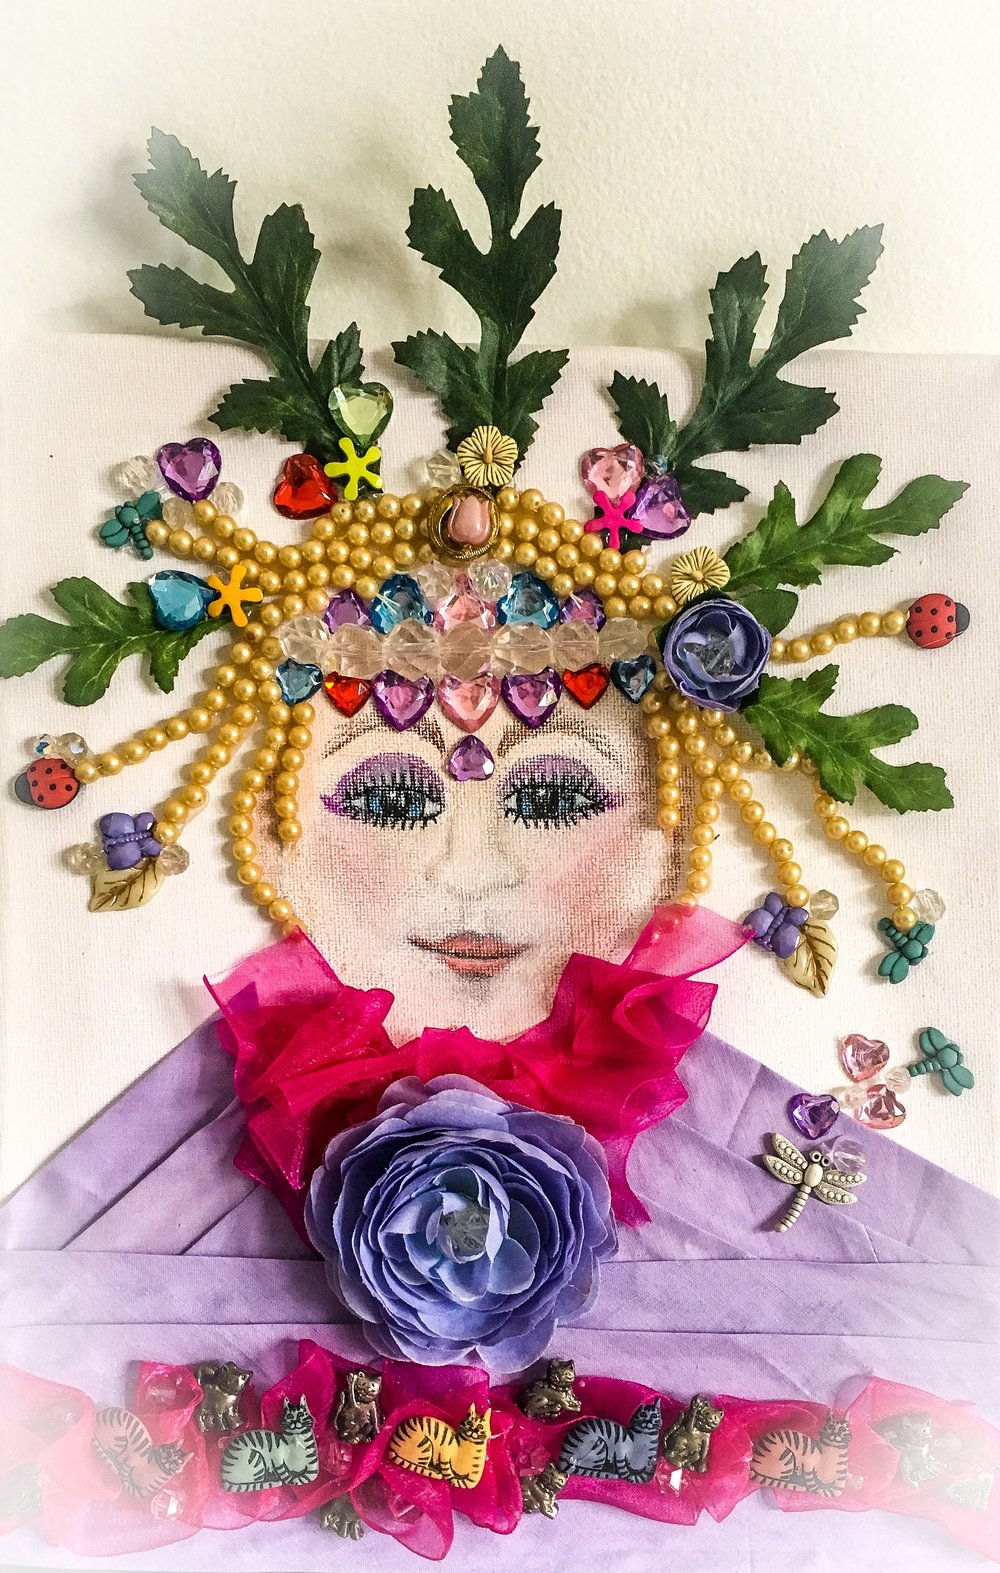 """""""PRINCESS AMELIA"""" lover of all things good - ACRYLICS AND FOUND OBJECTS ON CANVASSOLD"""